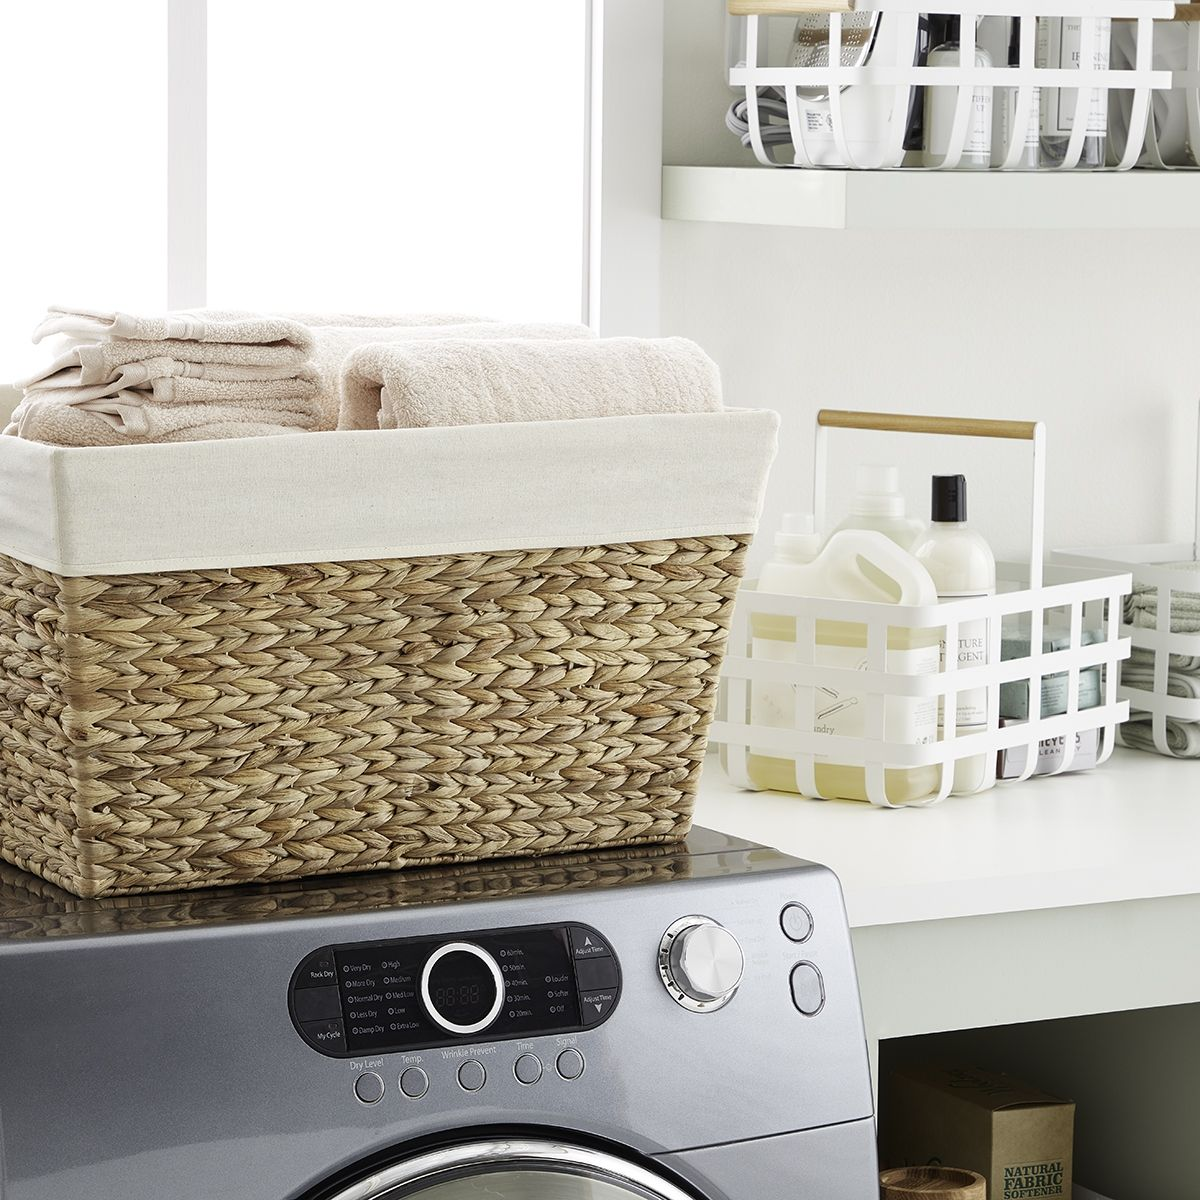 Laundry Room Storage Baskets Water Hyacinth Laundry Room